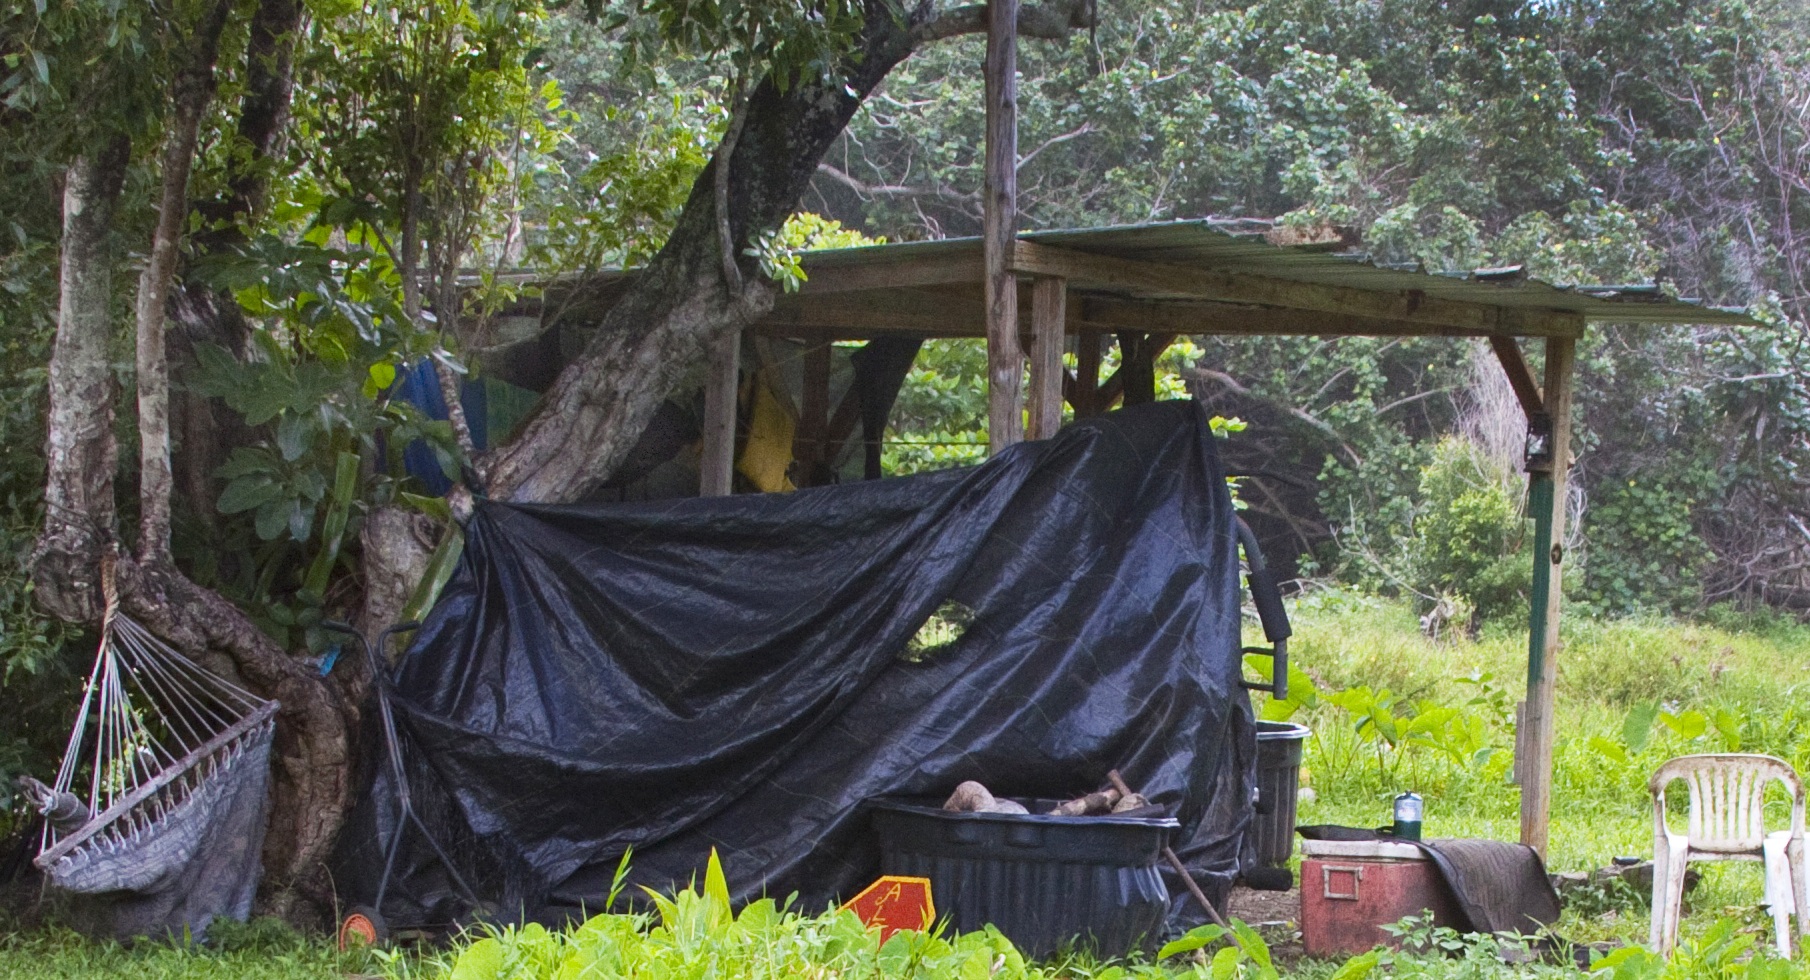 Photo of an actual squatter encampment in Kaua'i (Note the incongruous lawnmower in the lower left)